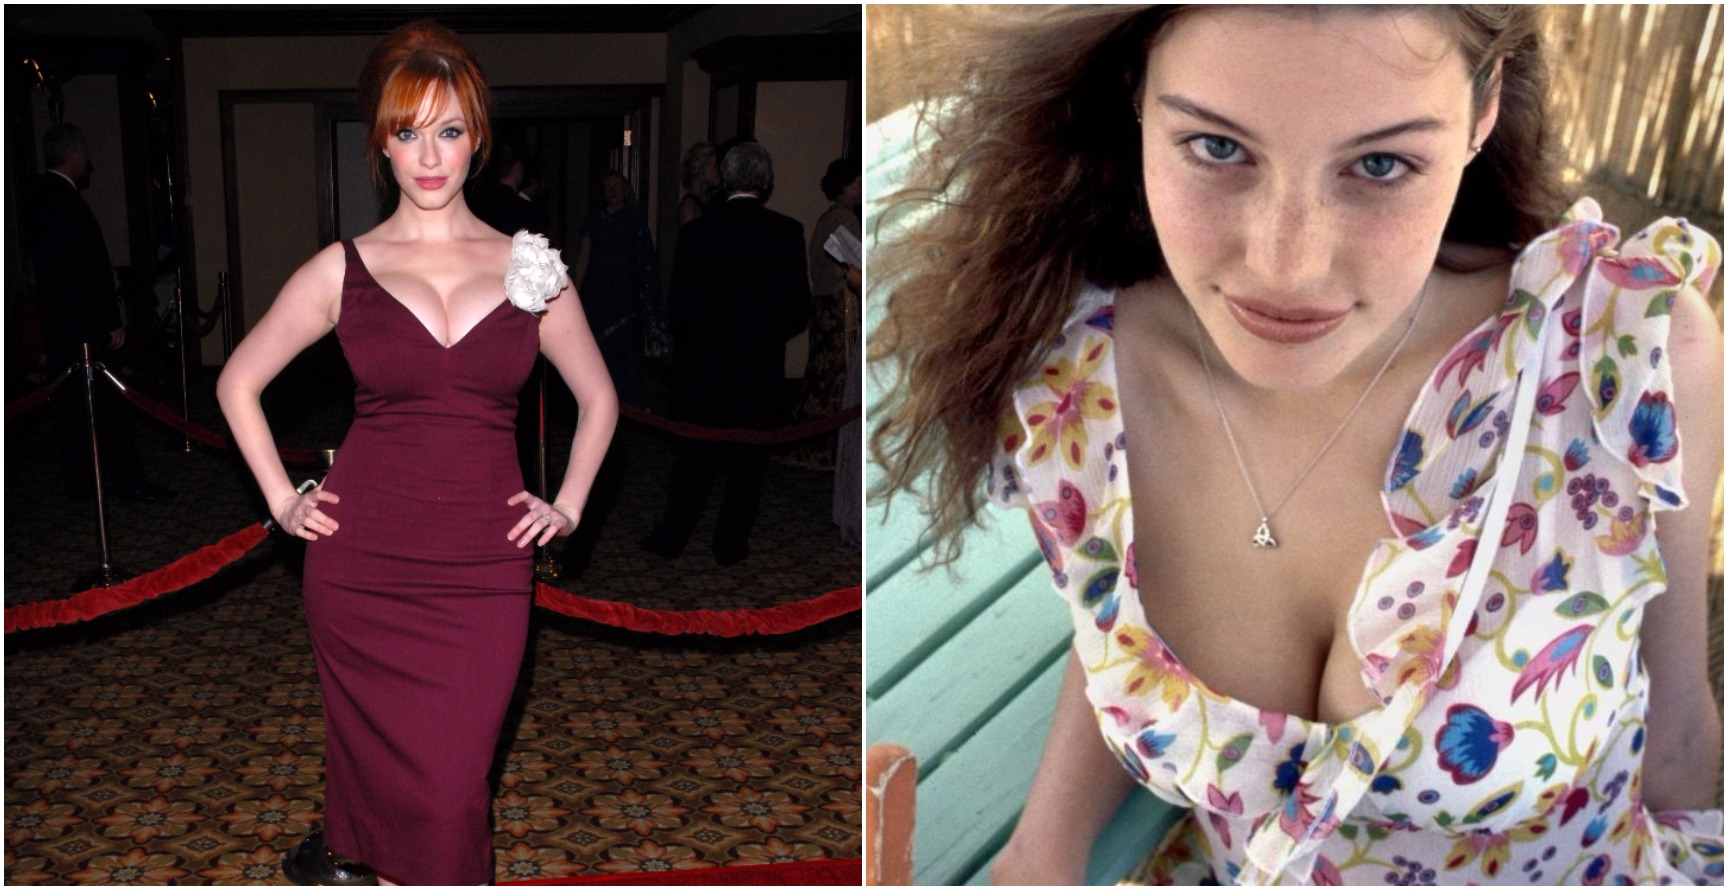 The 15 Most Voluptuous Female Celebrities in Their 30s